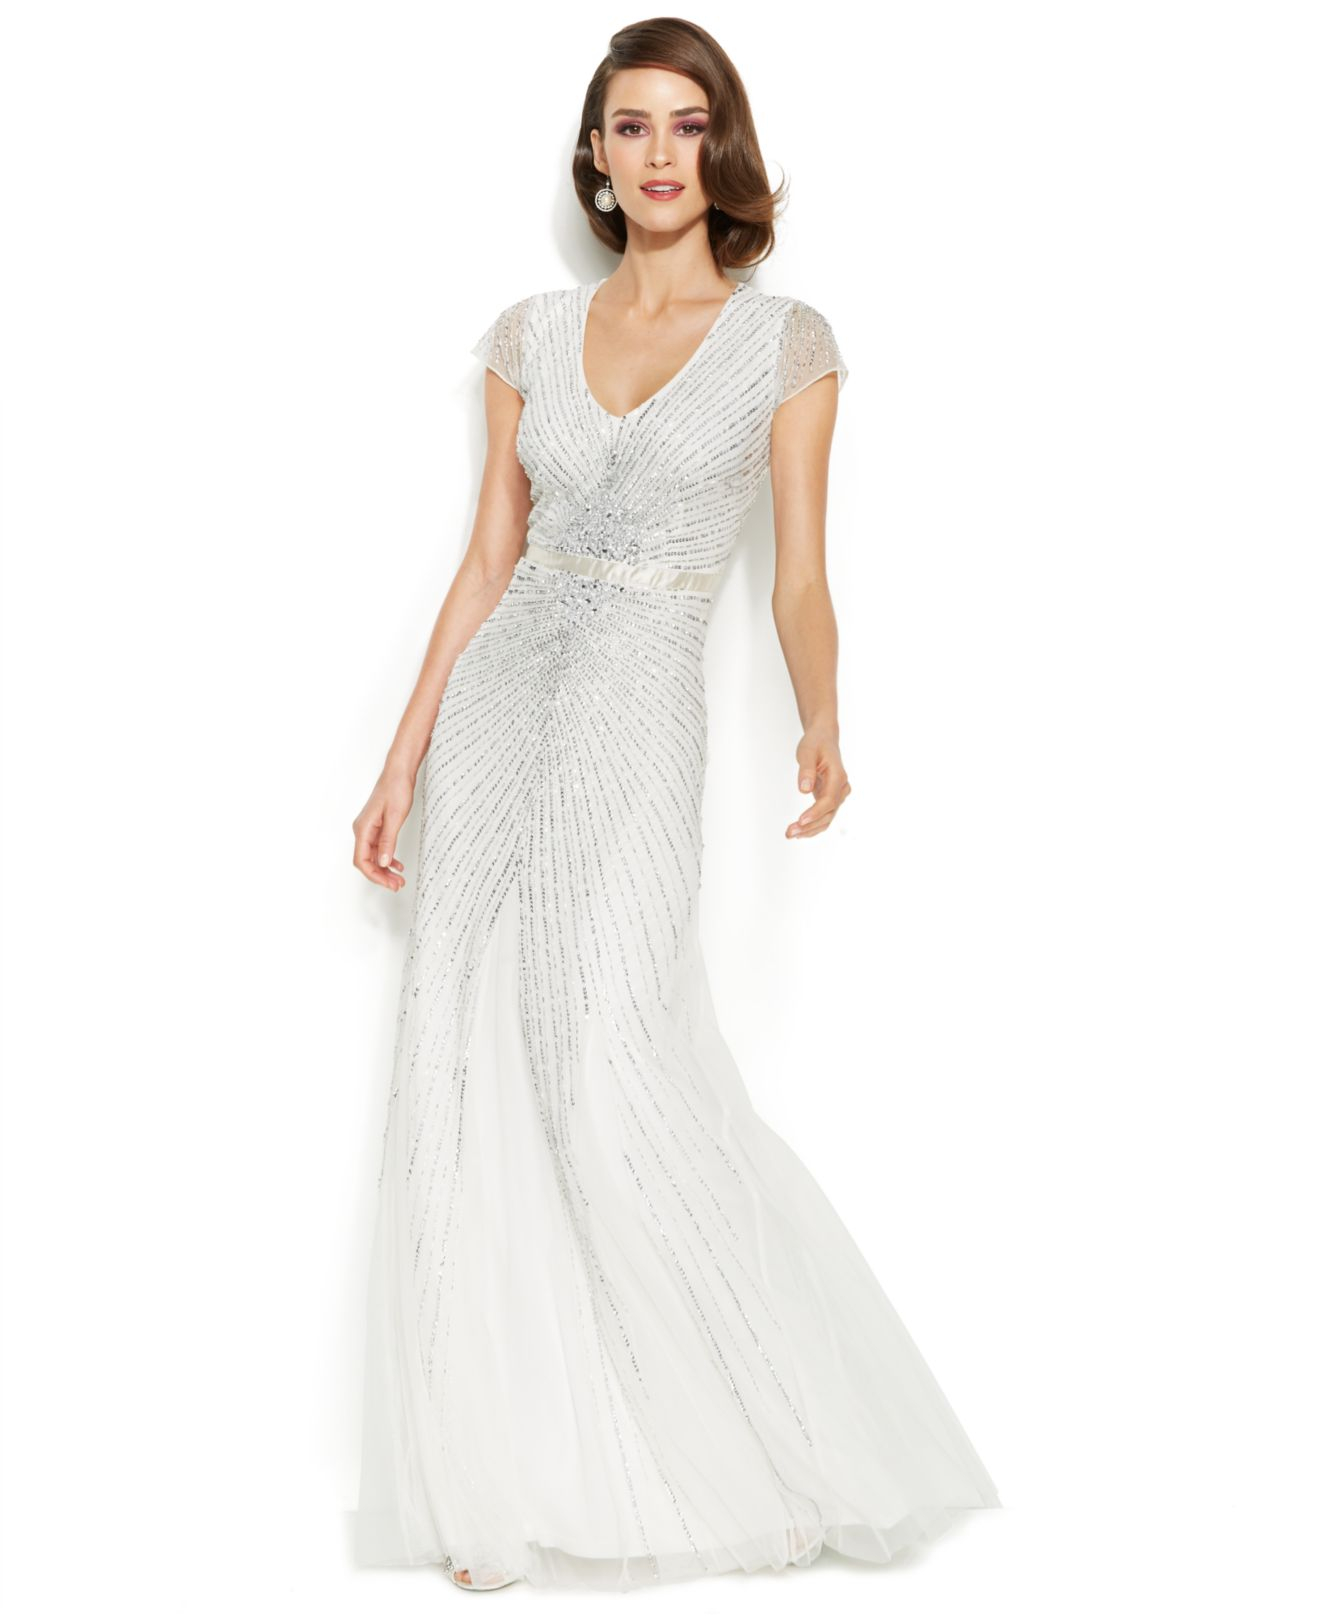 Lyst  Adrianna Papell CapSleeve Embellished Sunburst Gown in White